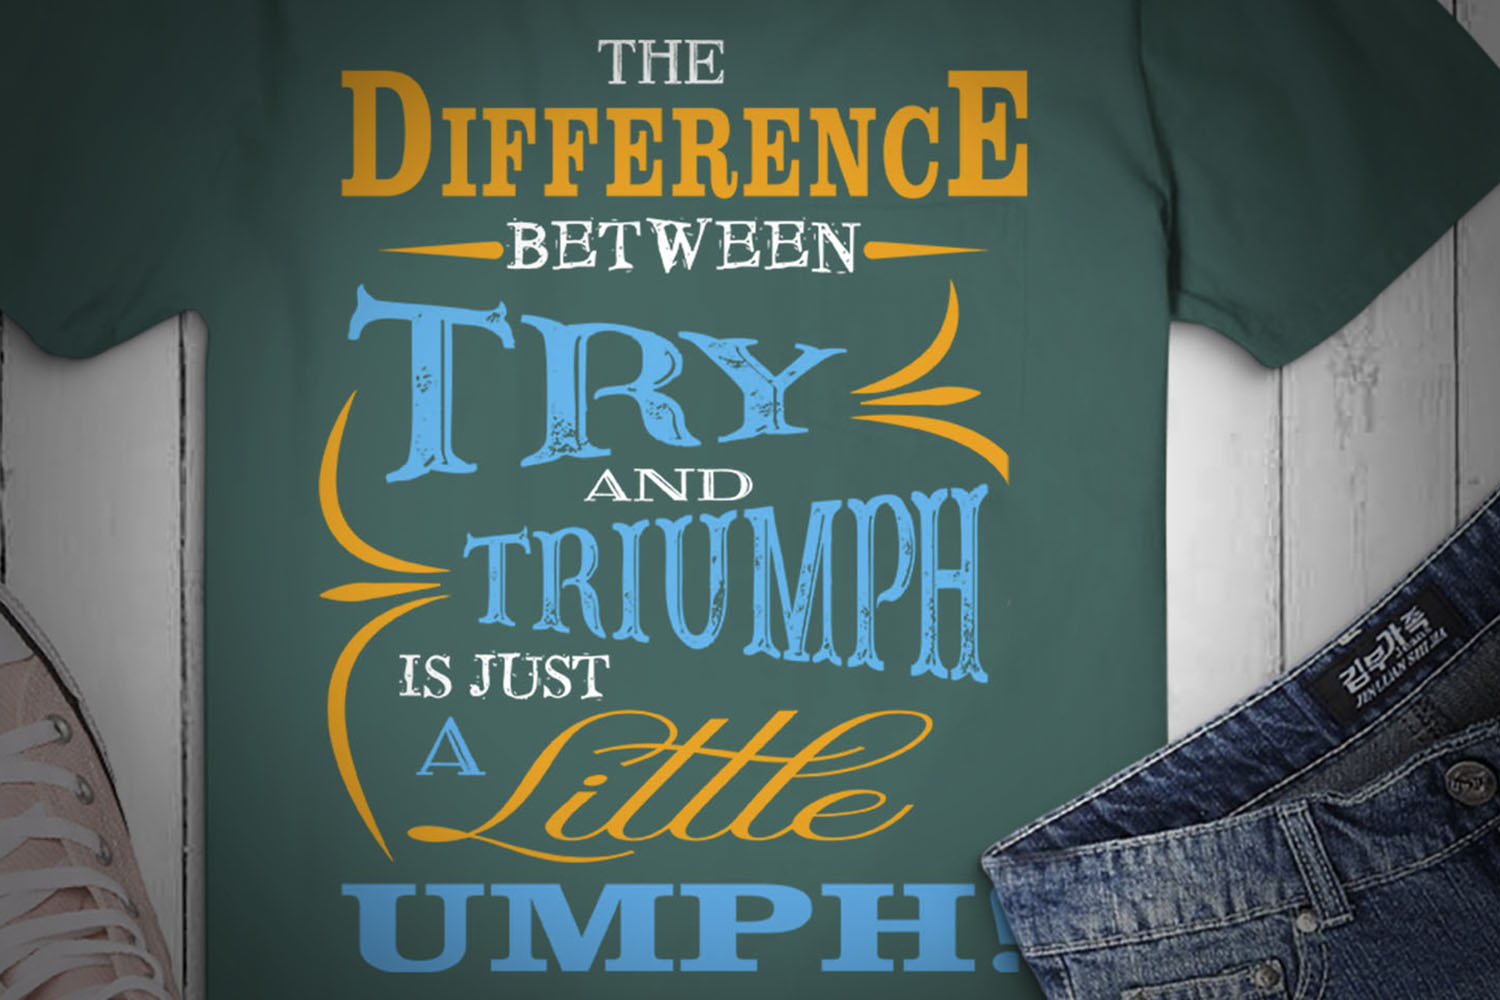 The Difference Between Try And Triumph Is Just a Little Umph example image 2